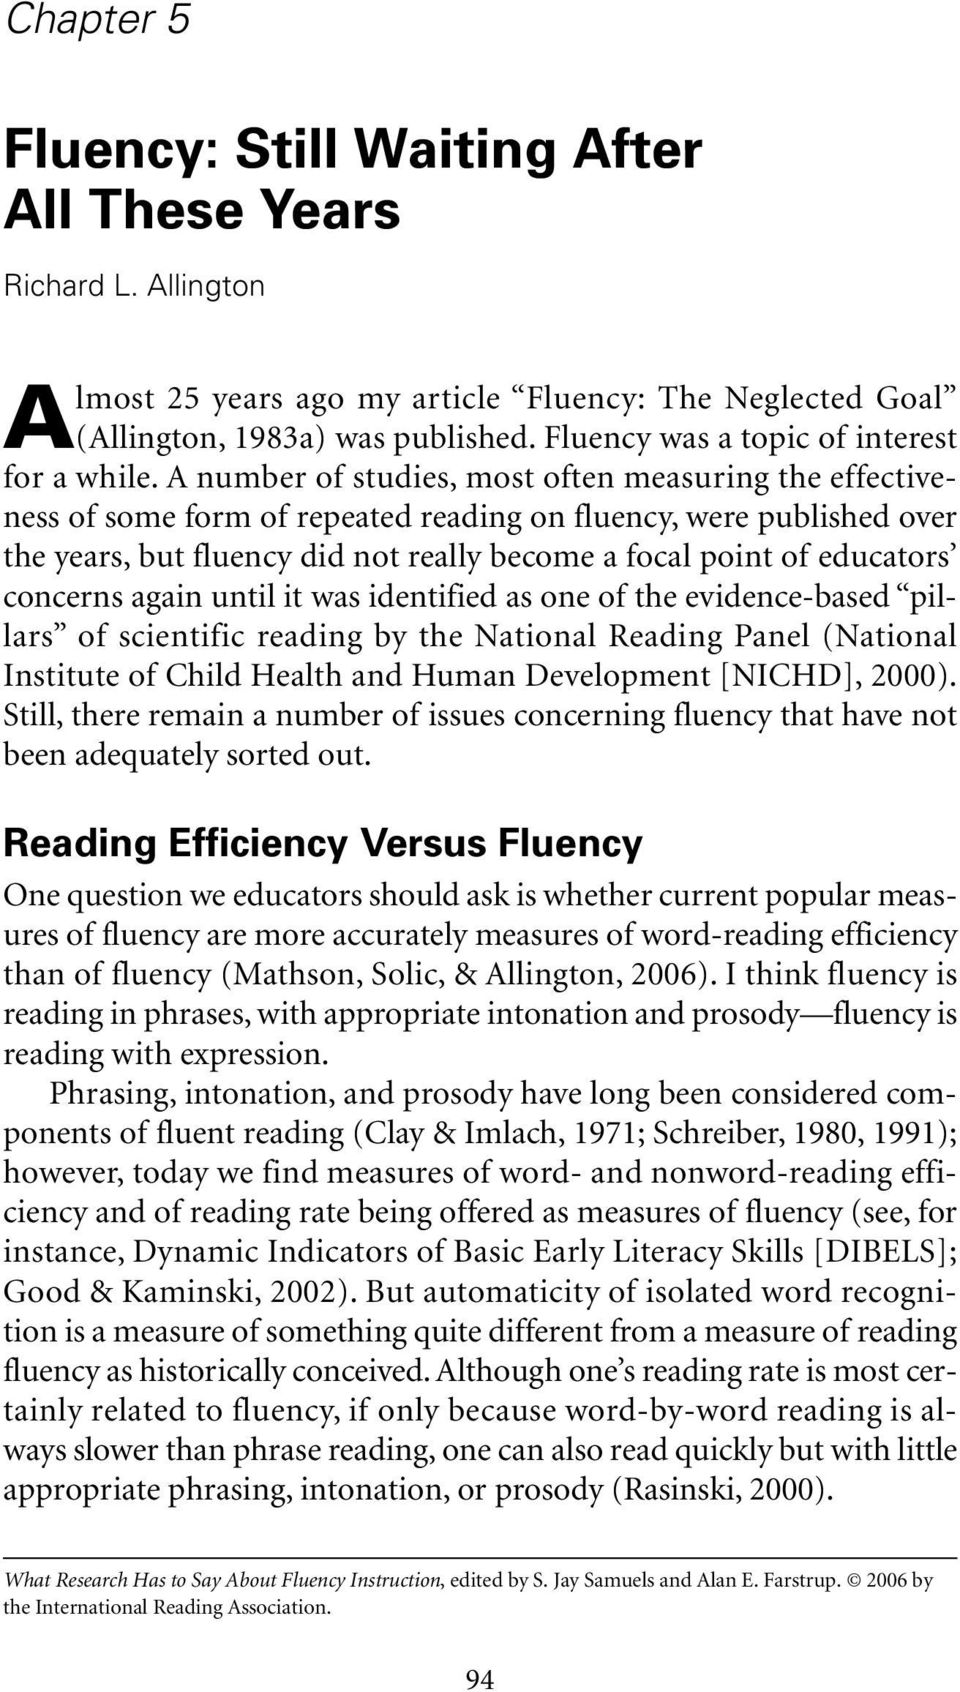 A number of studies, most often measuring the effectiveness of some form of repeated reading on fluency, were published over the years, but fluency did not really become a focal point of educators